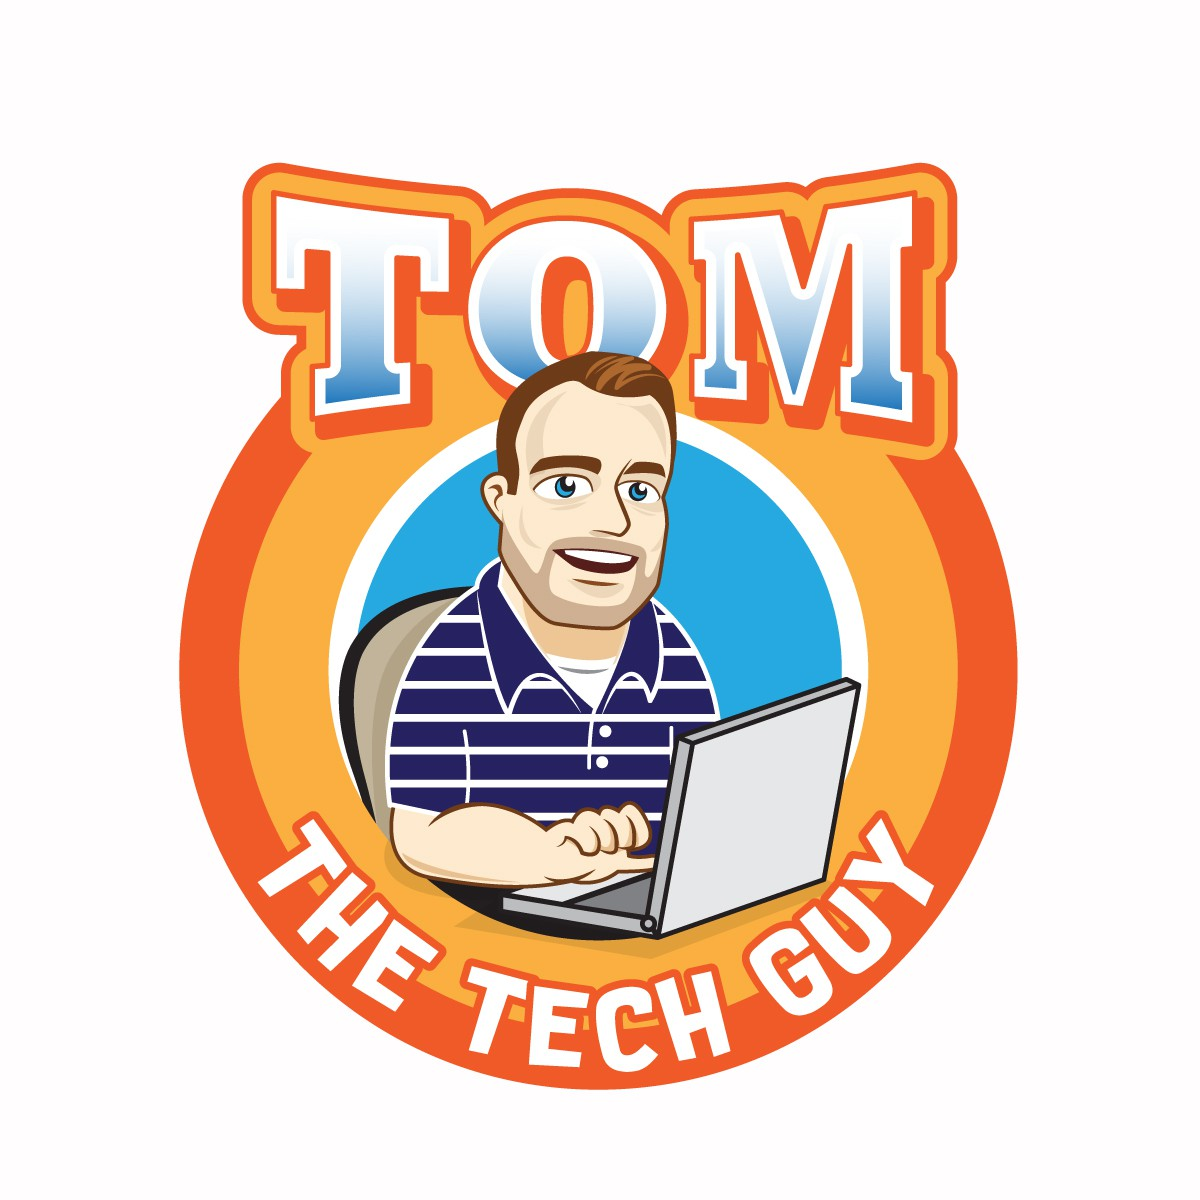 Tom the tech guy